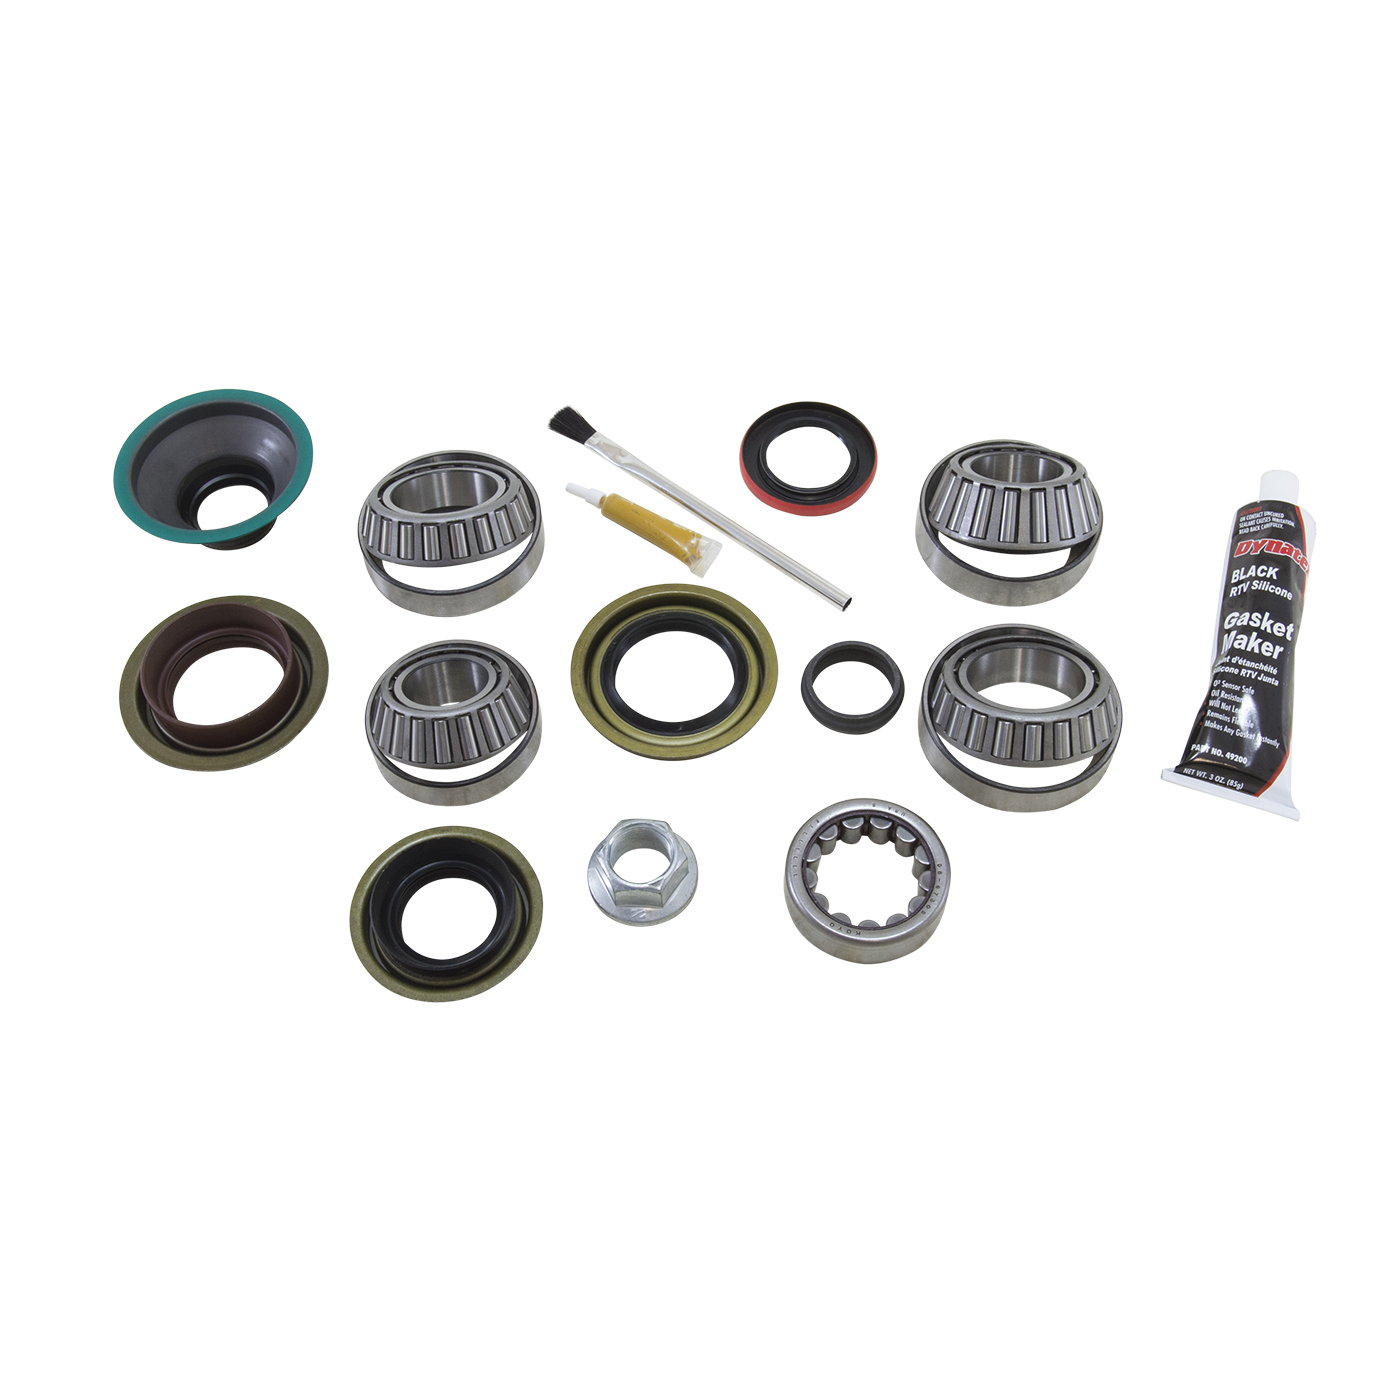 BK M35-IFS - Yukon Bearing install kit for Model 35 IFS differential for the Ranger and Explorer